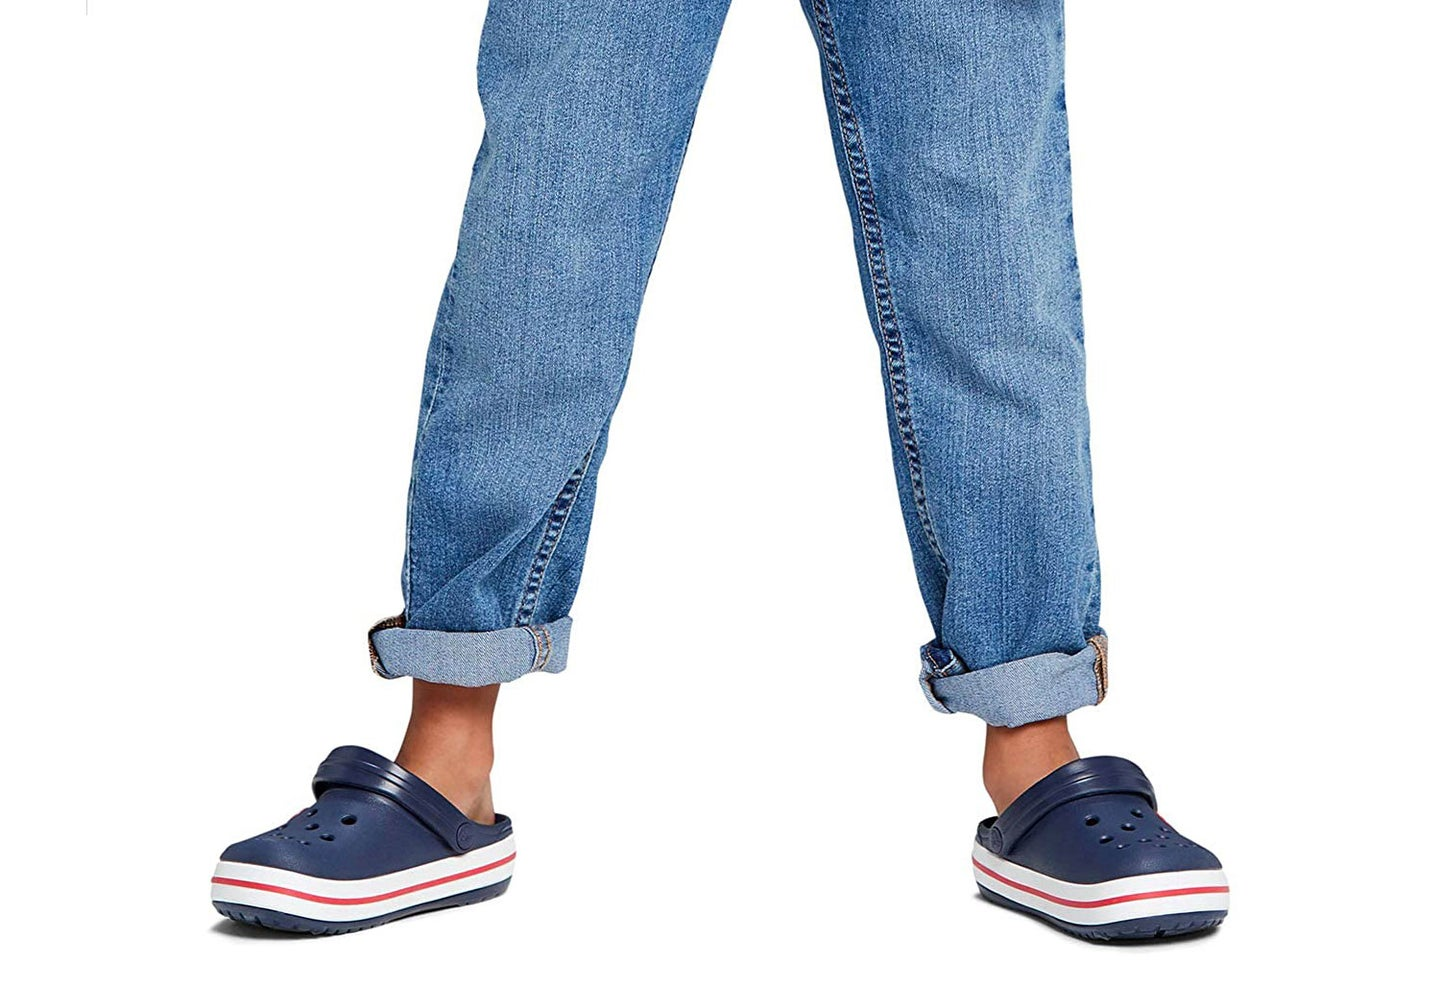 Child wearing jeans and Crocs water shoes